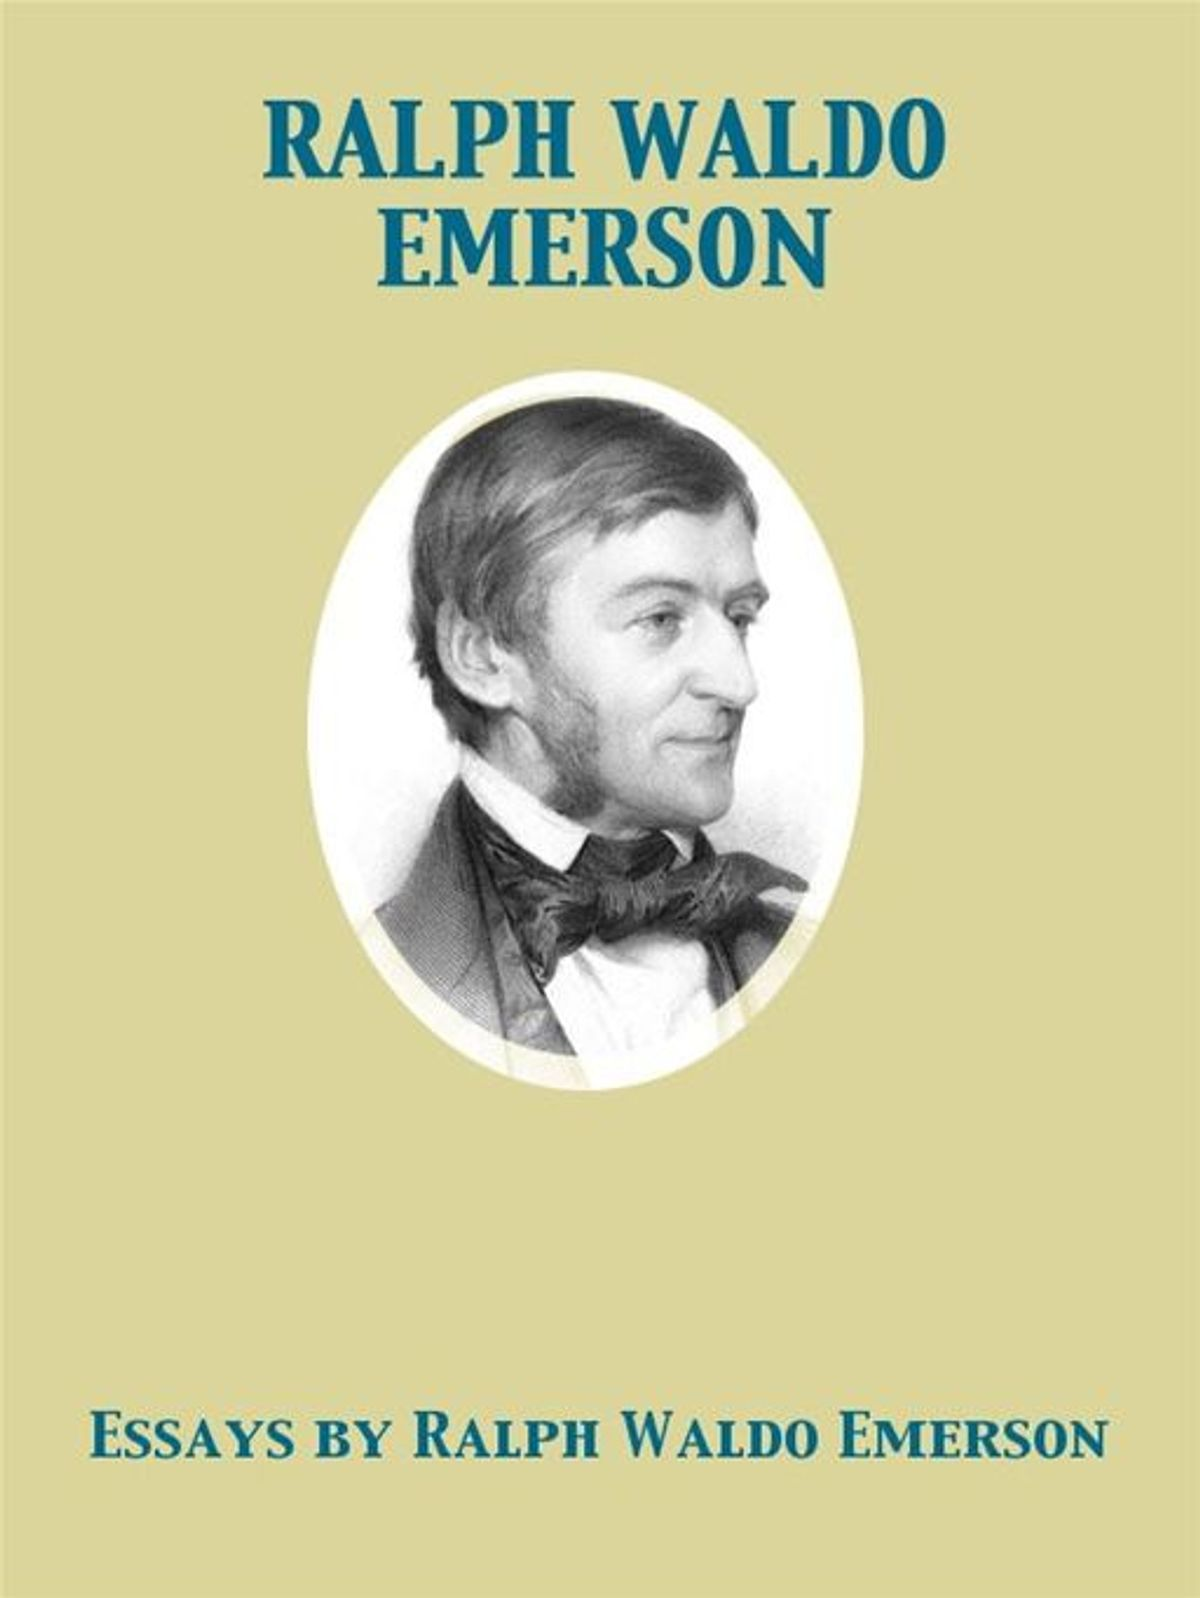 012 Essay Example Ralph Waldo Emerson Essays By Unusual Nature And Selected Pdf Download First Second Series Full